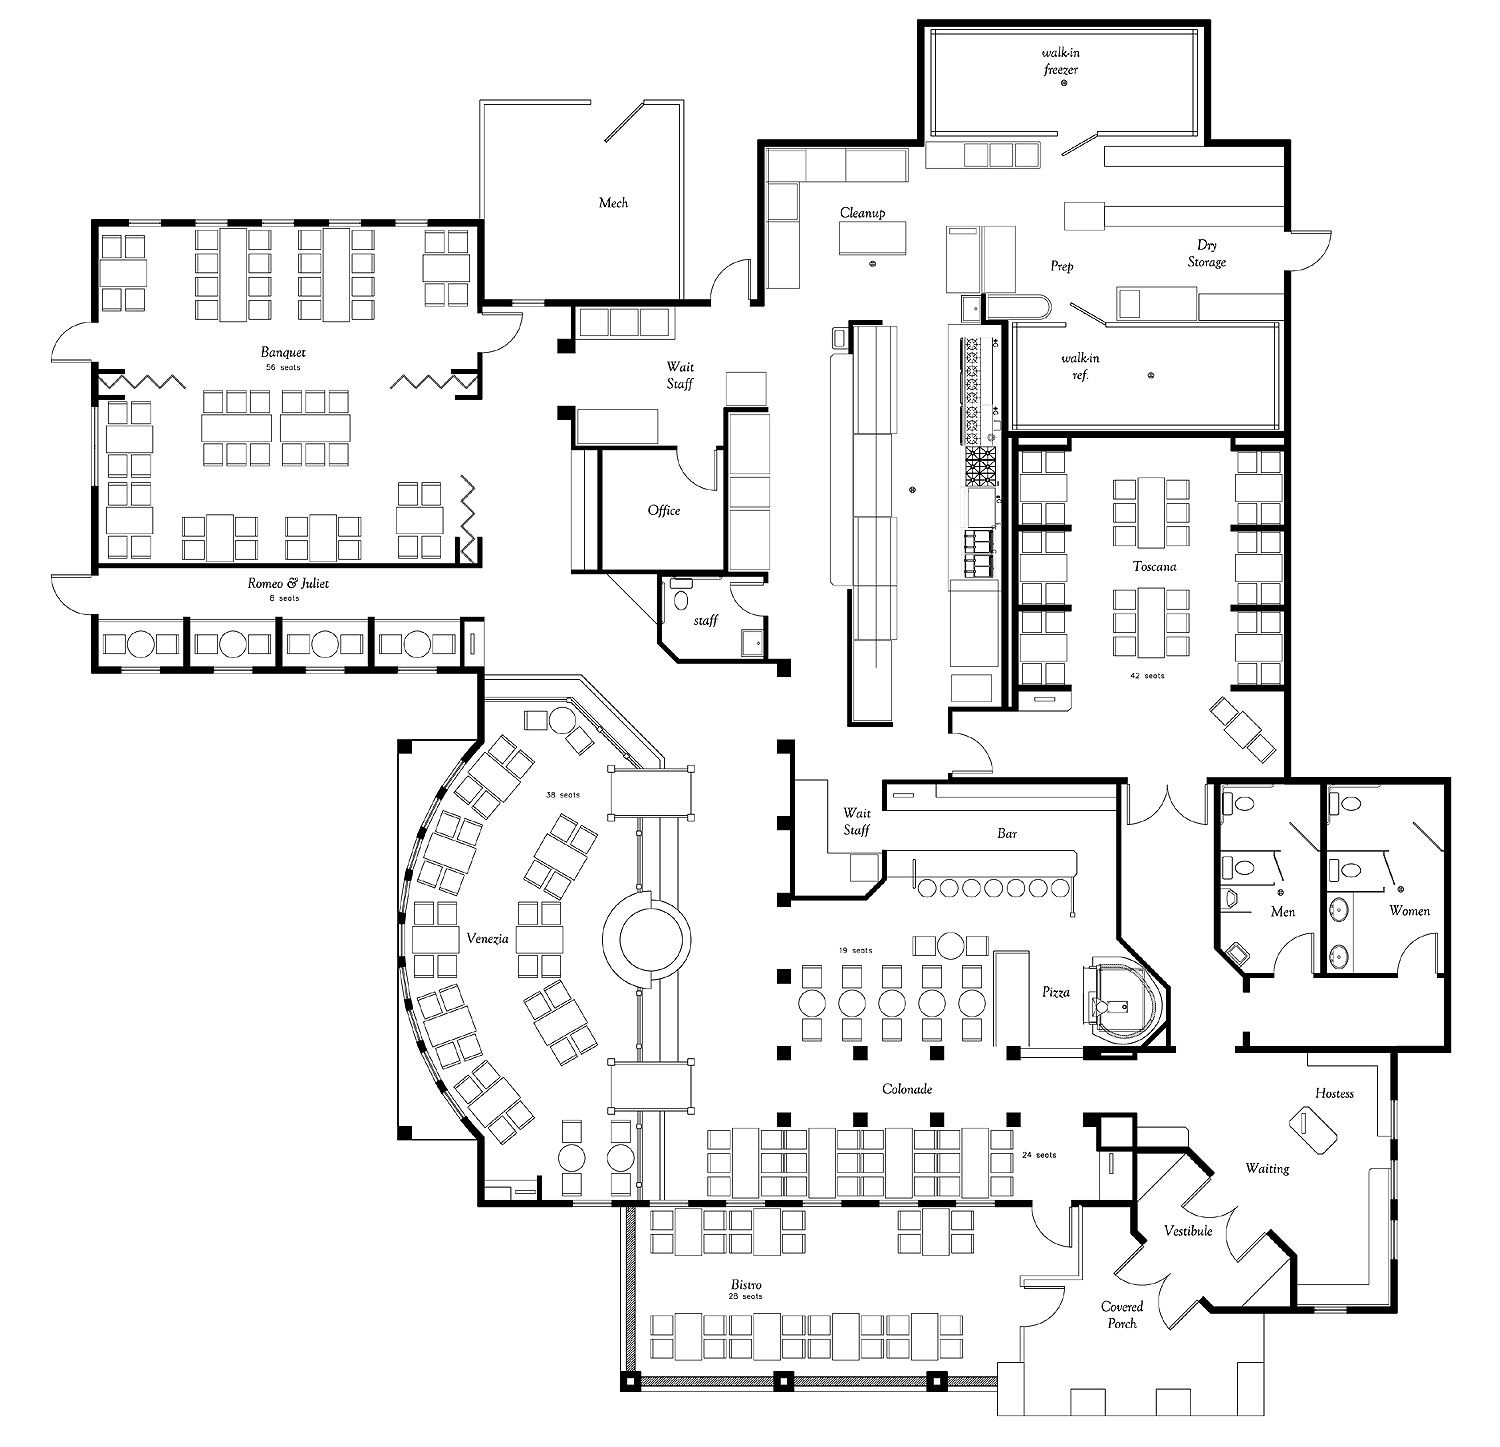 Kitchen Layout Plans For Restaurant: Home--Floorplans: Commercial